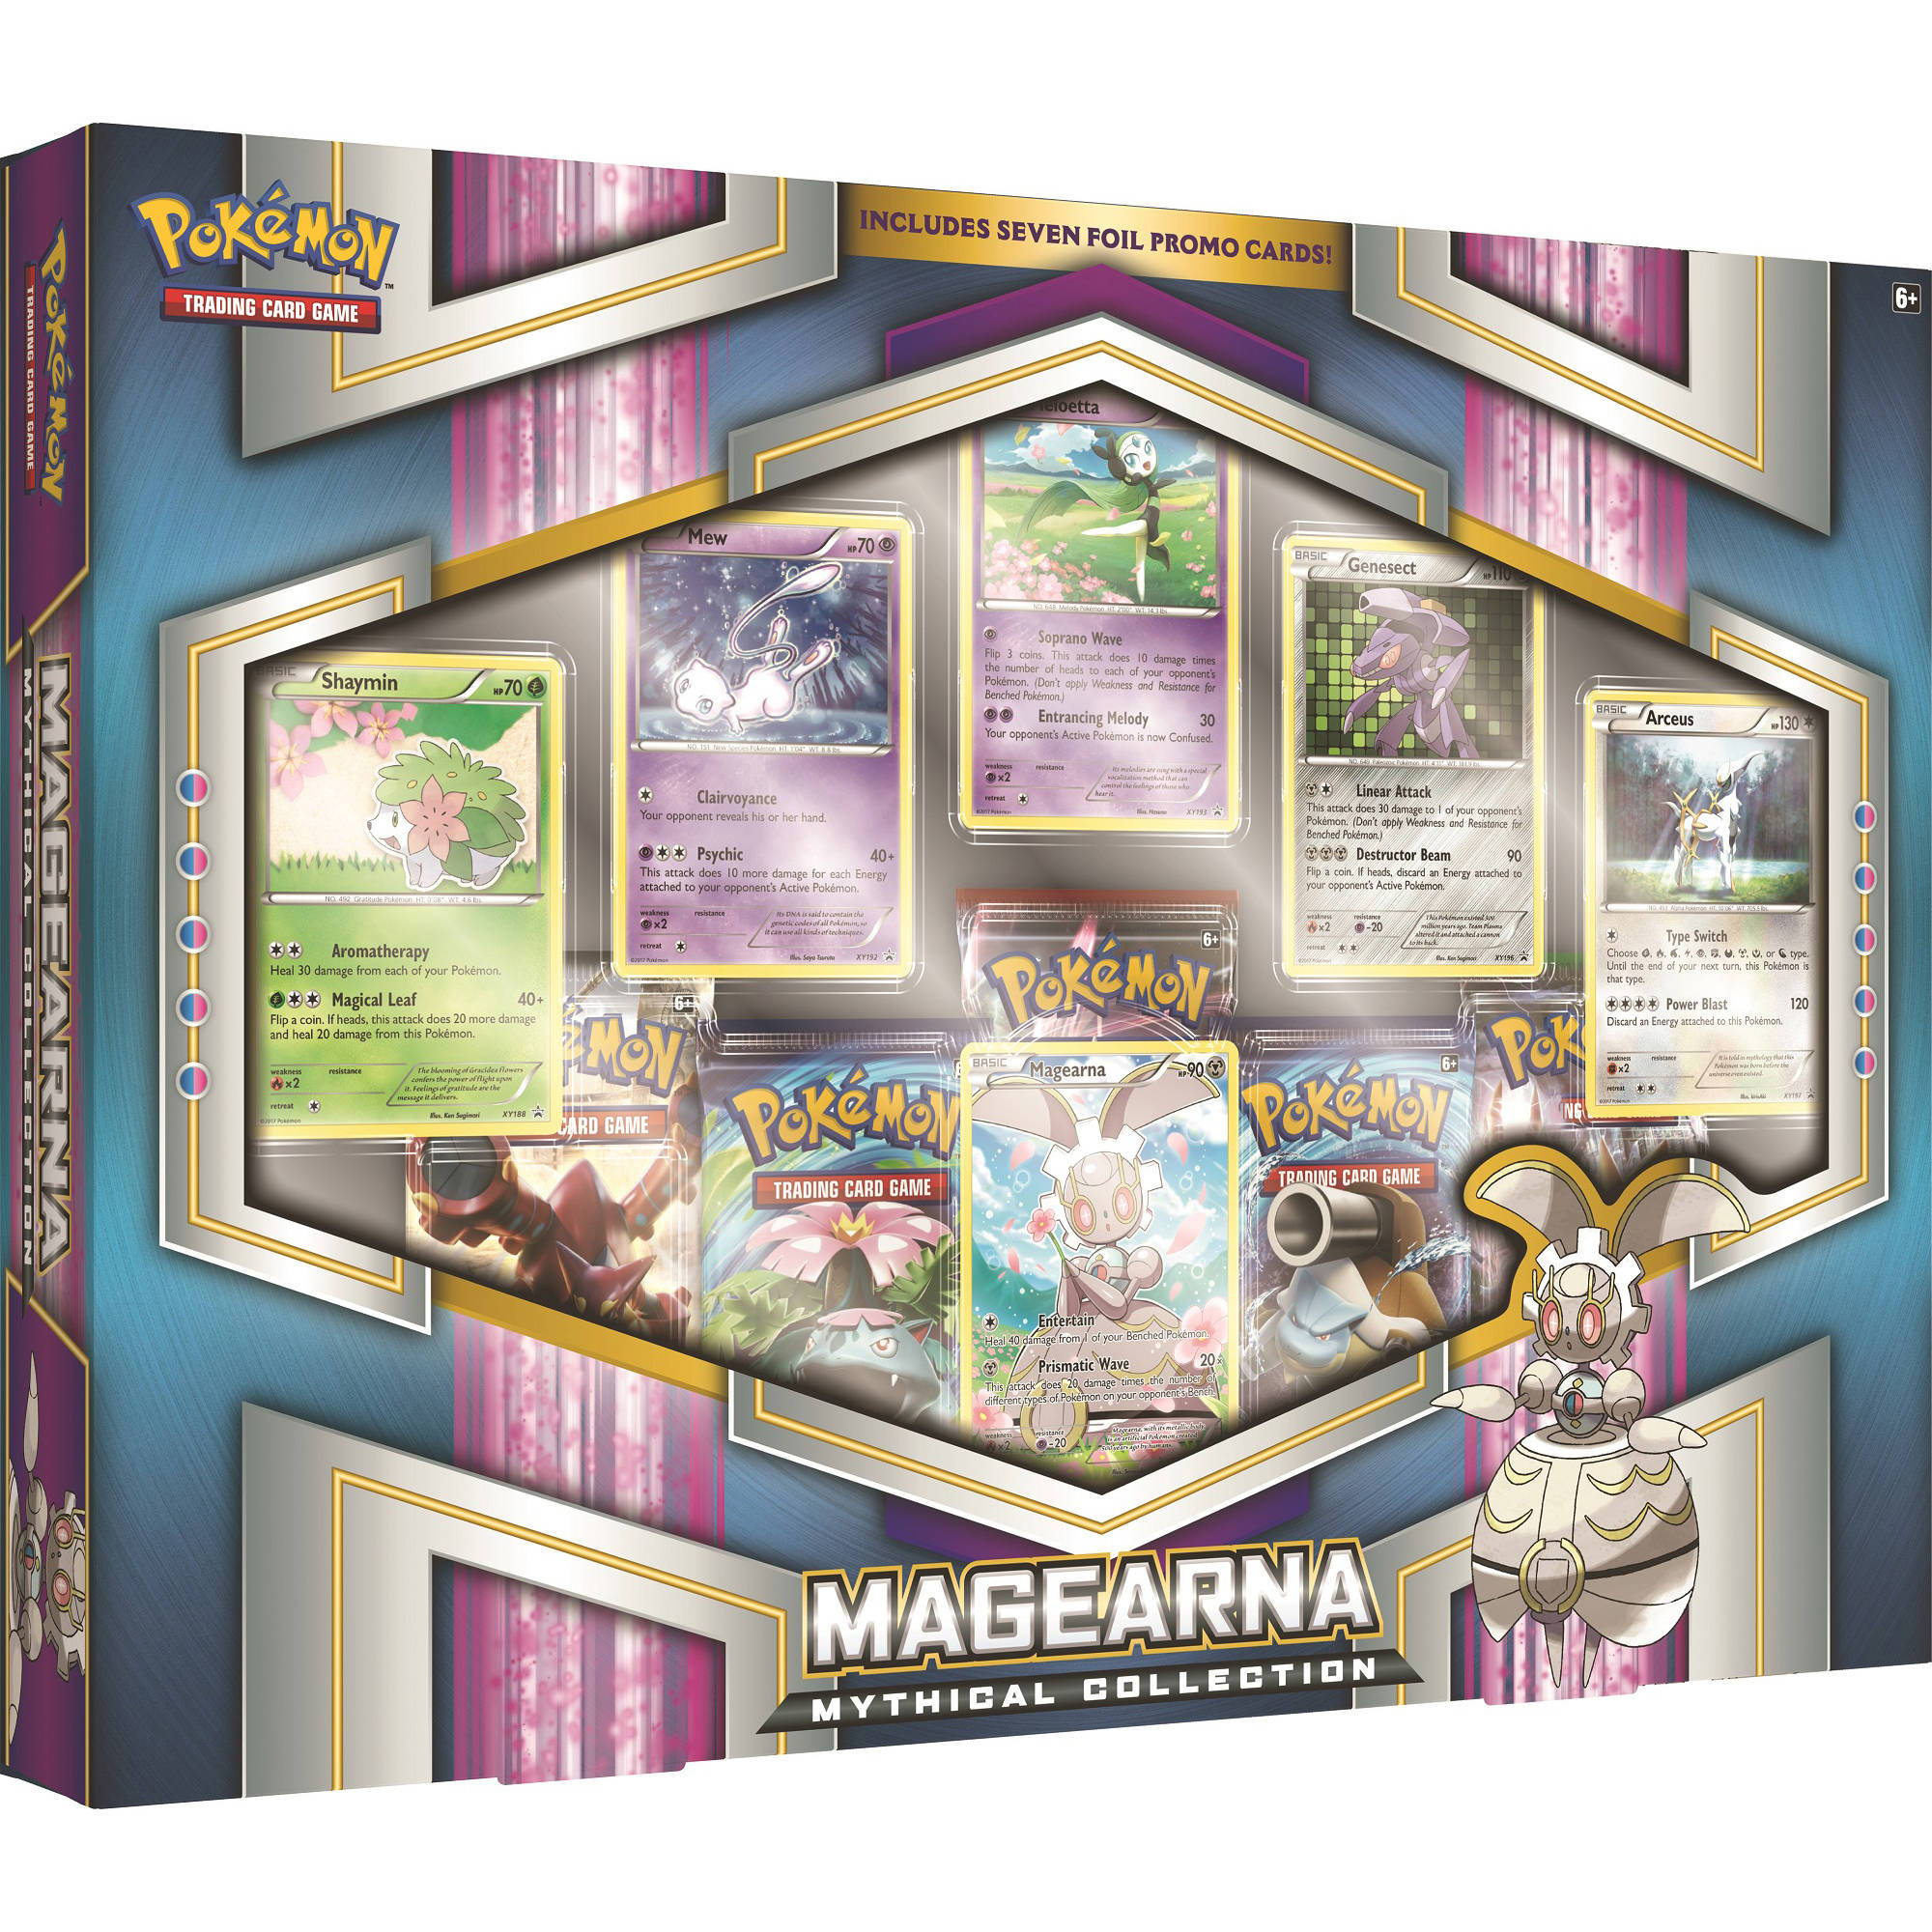 Pokemon Mythical Movie Collection Box by Pokemon